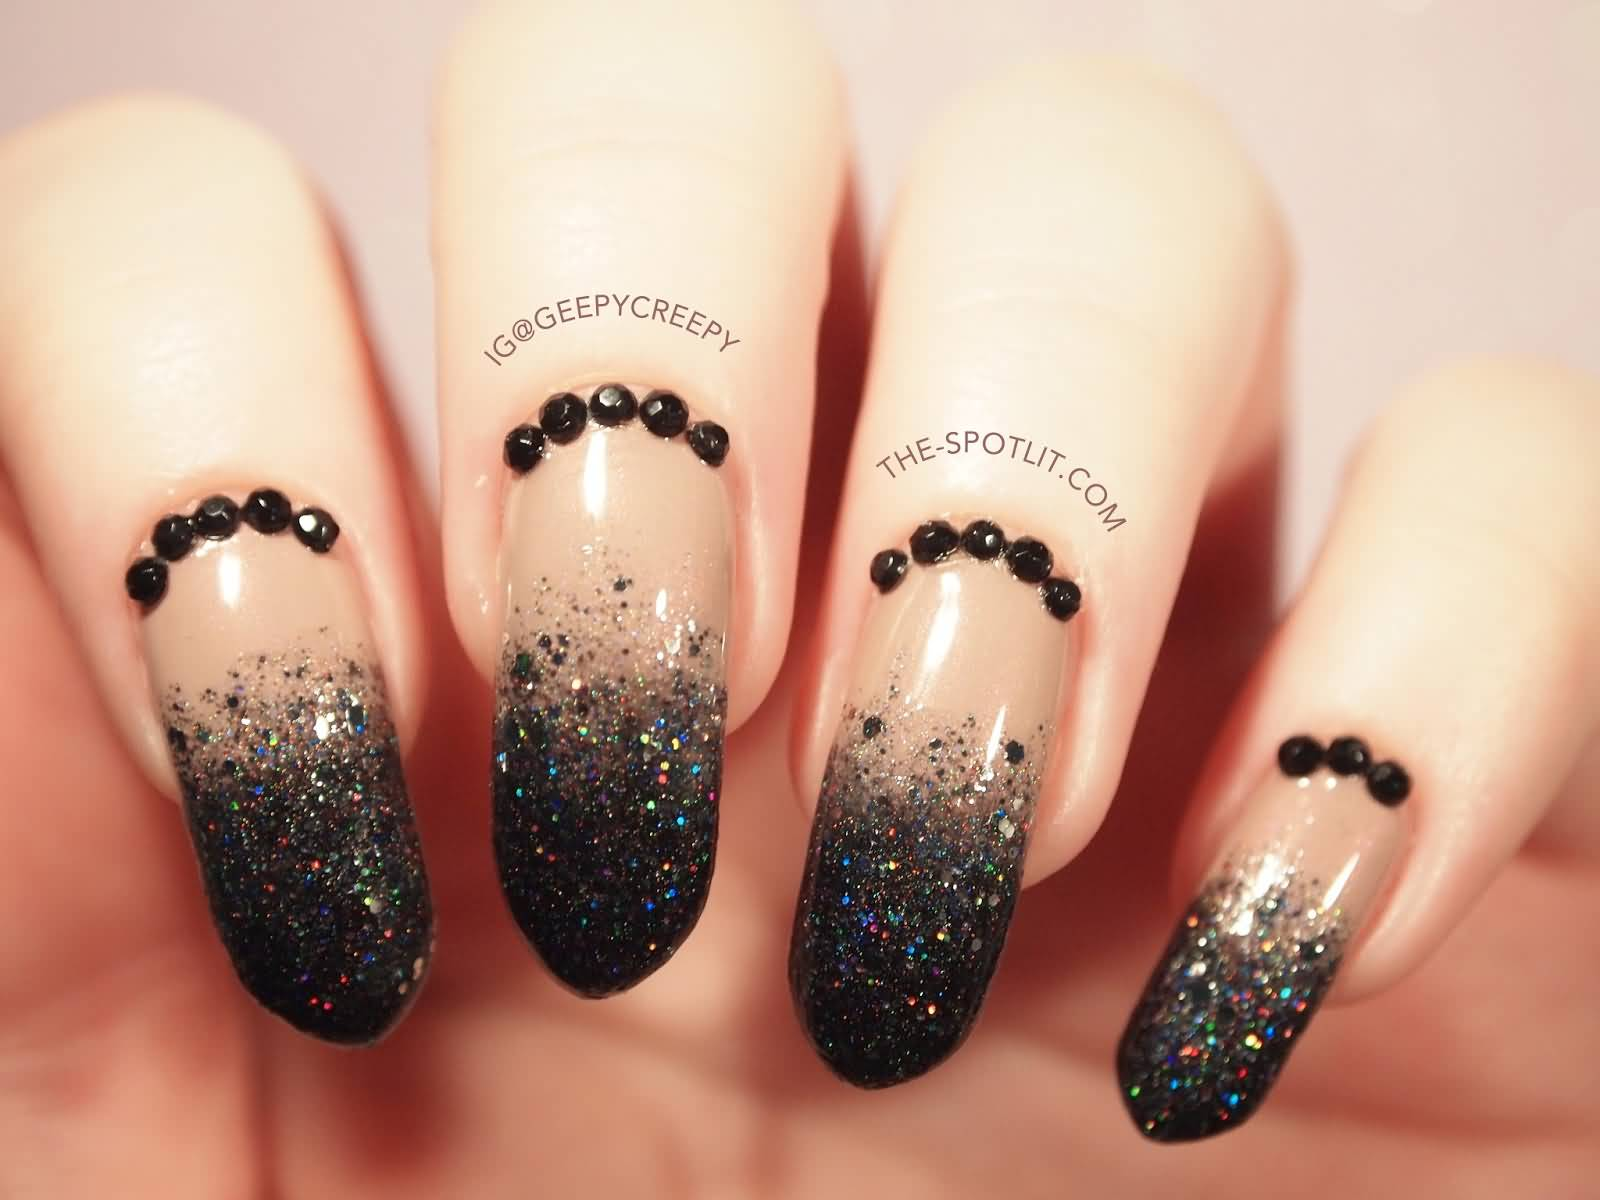 55 black and beige nail art design idea beige and black glitter and caviar beads design nail art prinsesfo Gallery